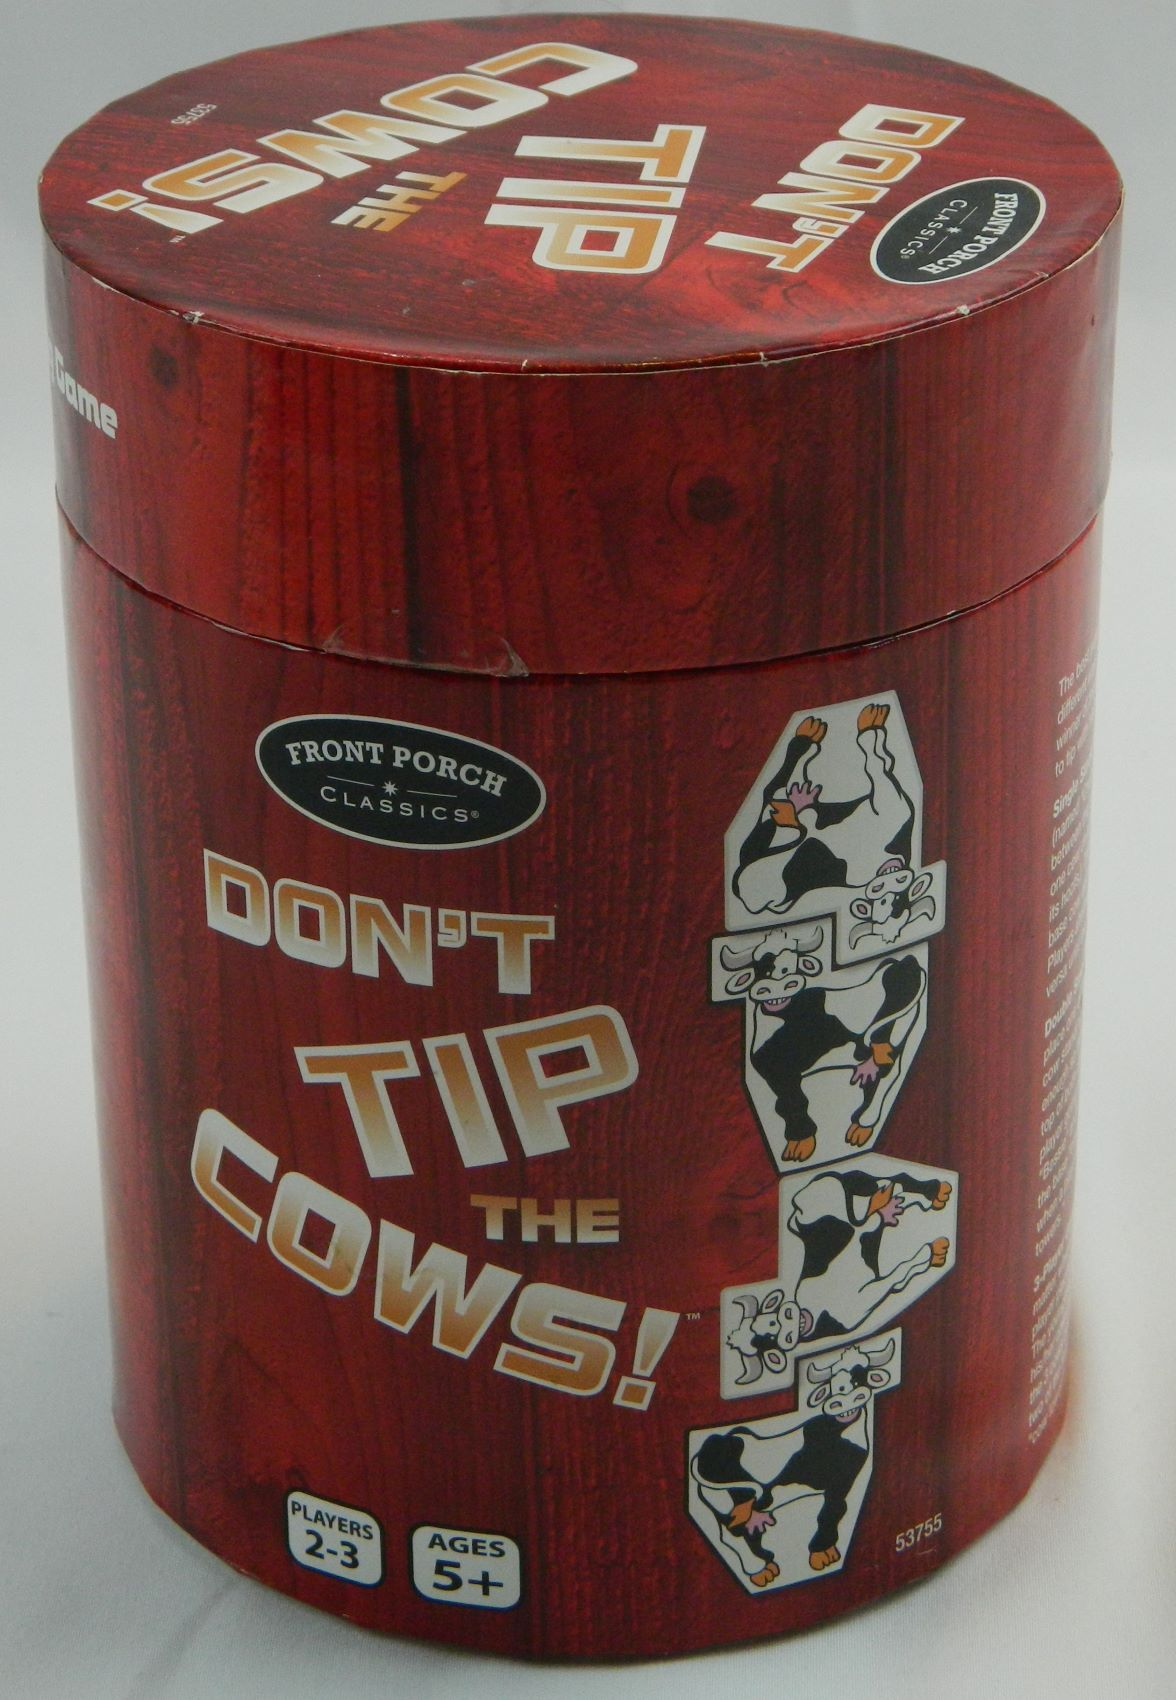 Box for Don't Tip the Cows